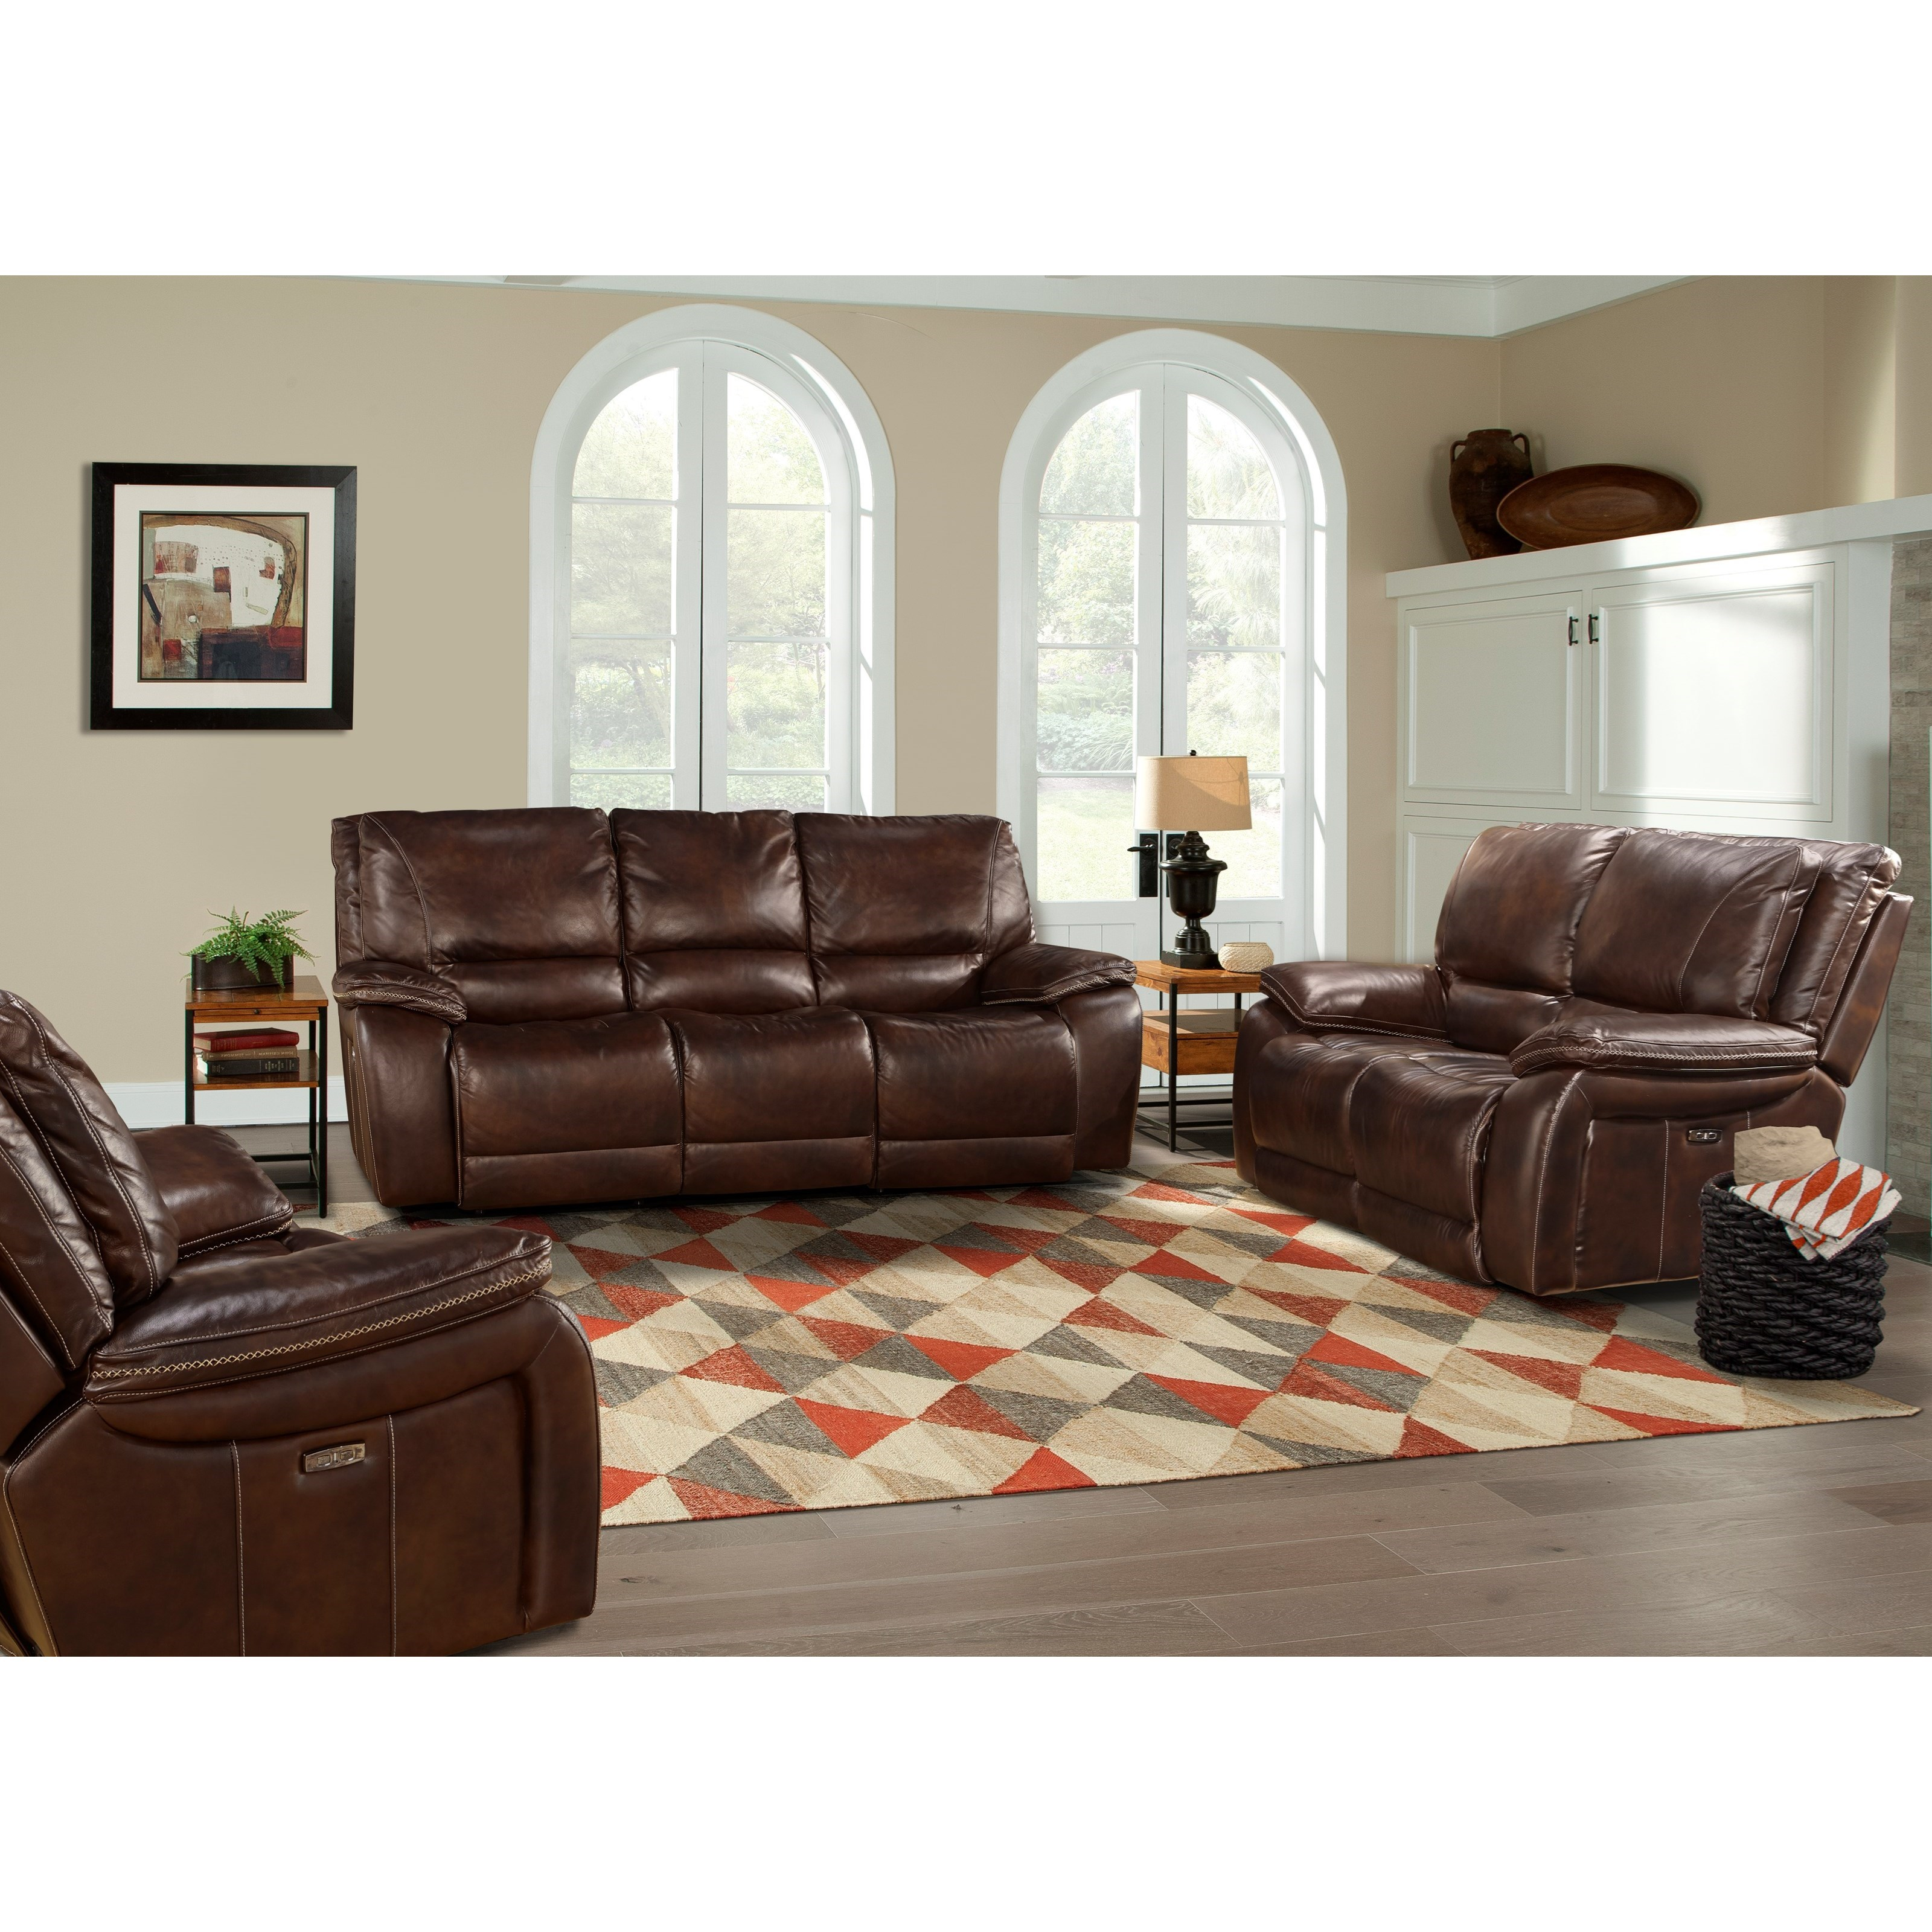 Parker living vail power reclining living room group del for Living room furniture groups